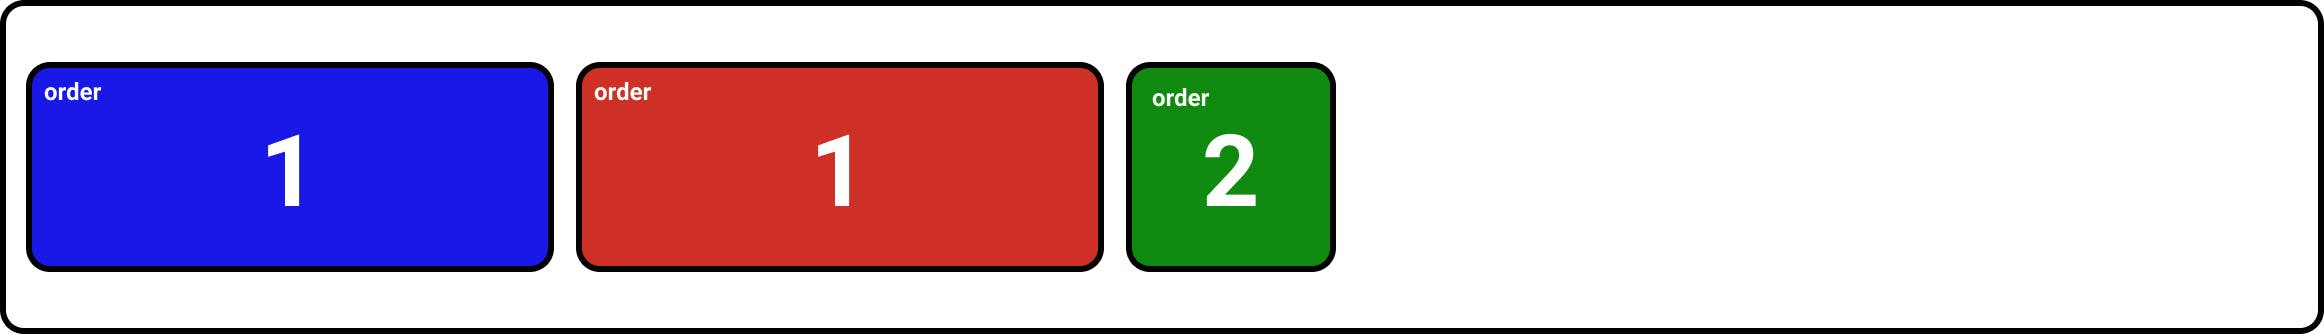 CSS flexbox without order